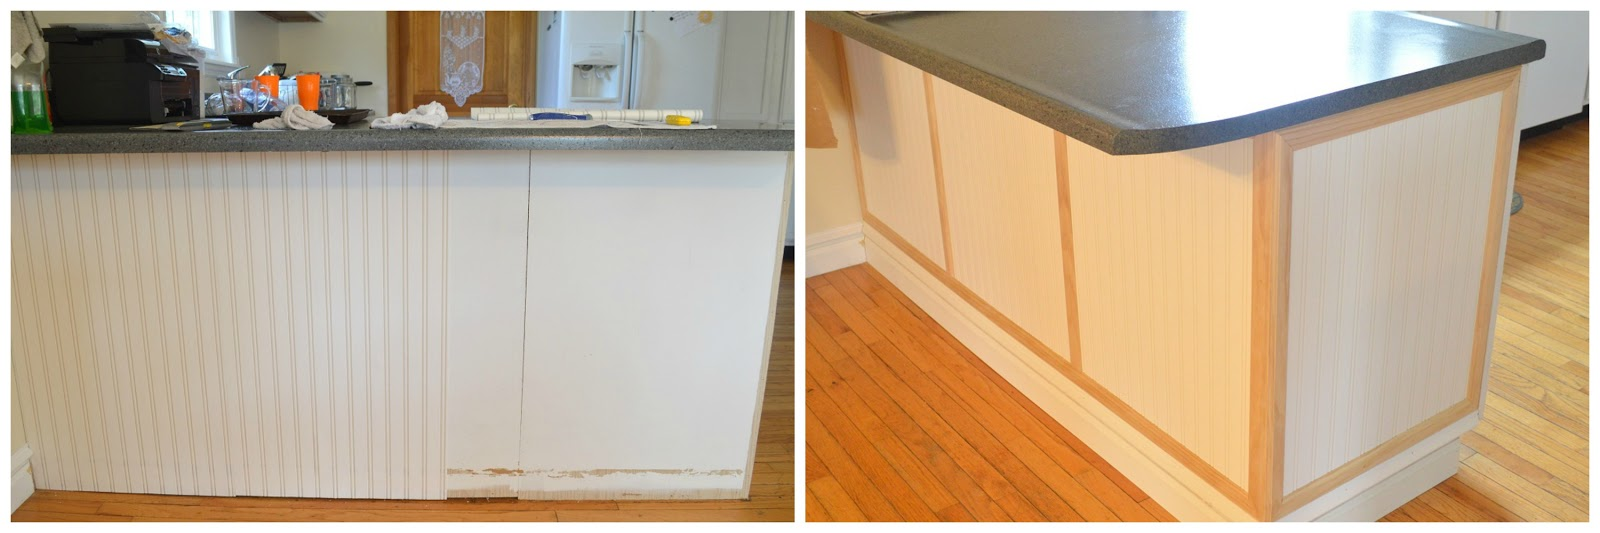 Diy Beadboard Kitchen Cabinets Liquid Nails